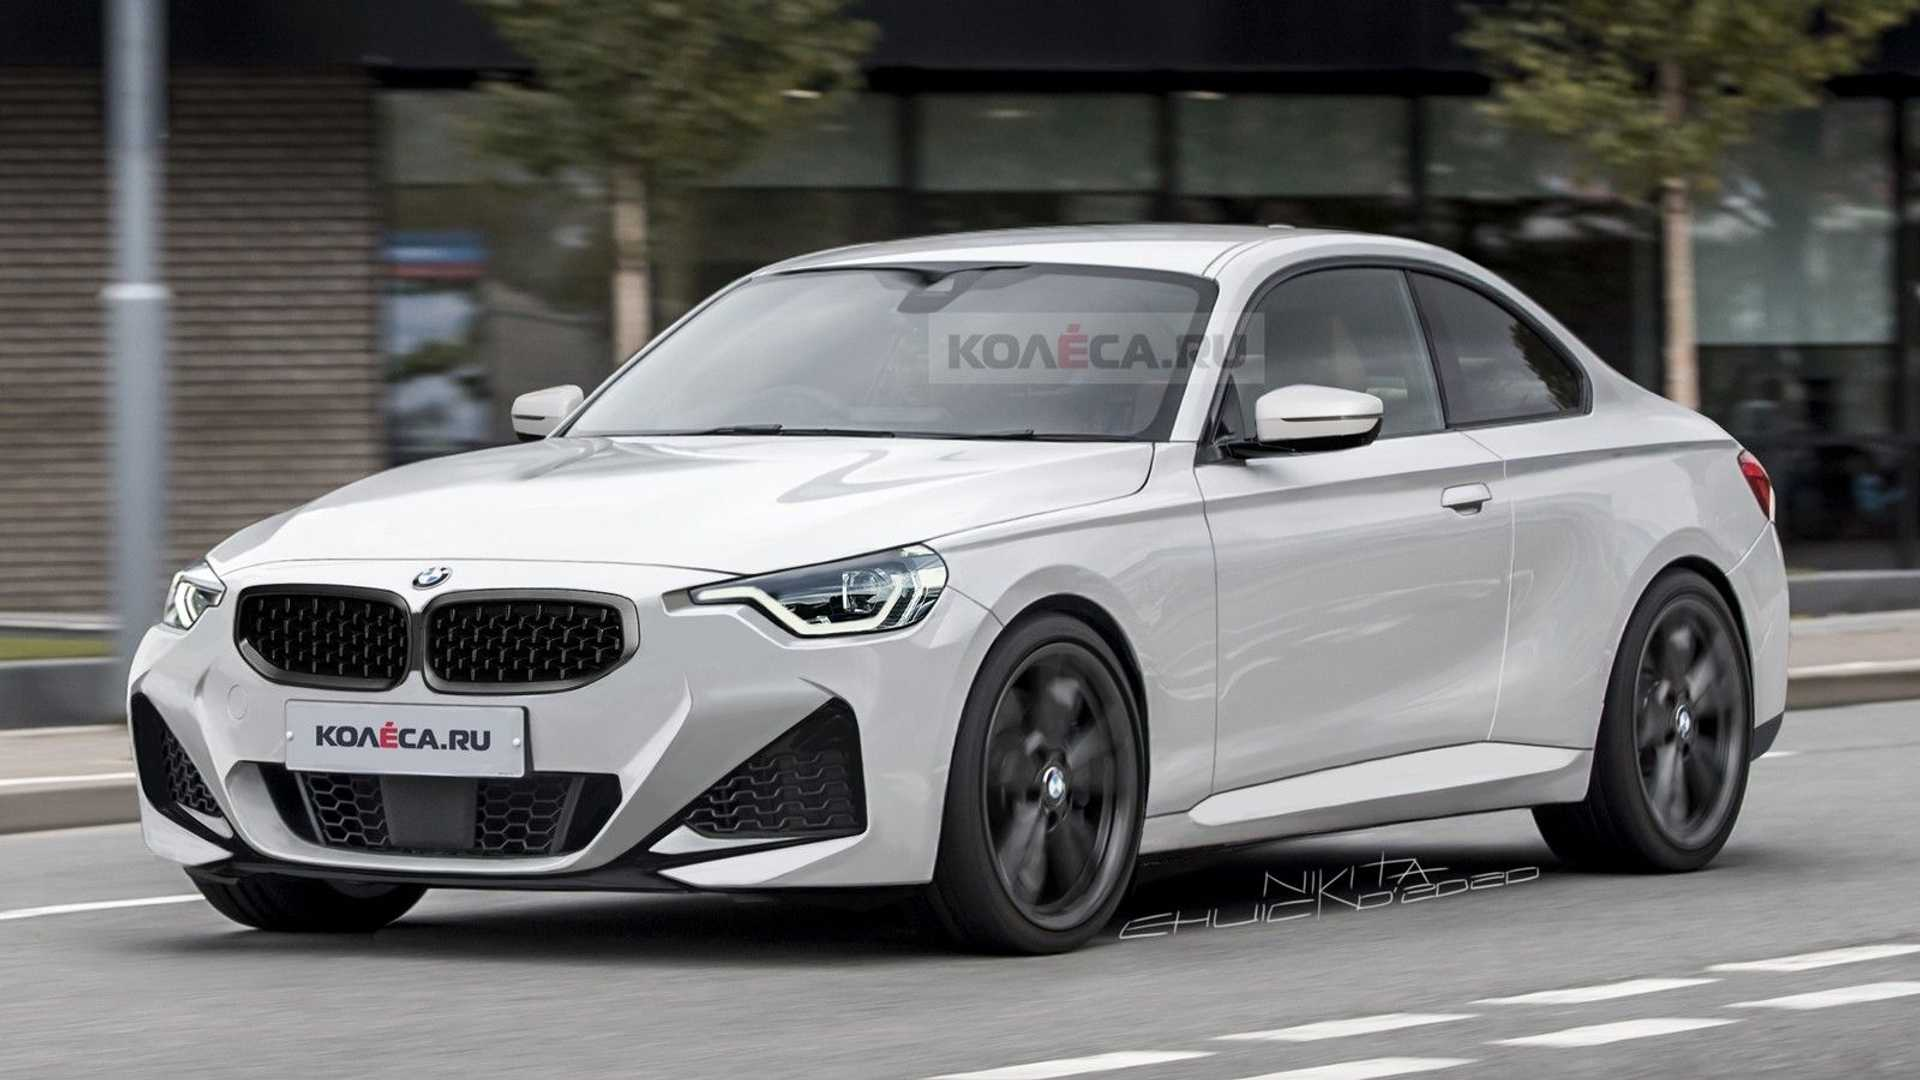 4 BMW 4 Series Coupe Leaked Photos Turned Into Realistic Rendering